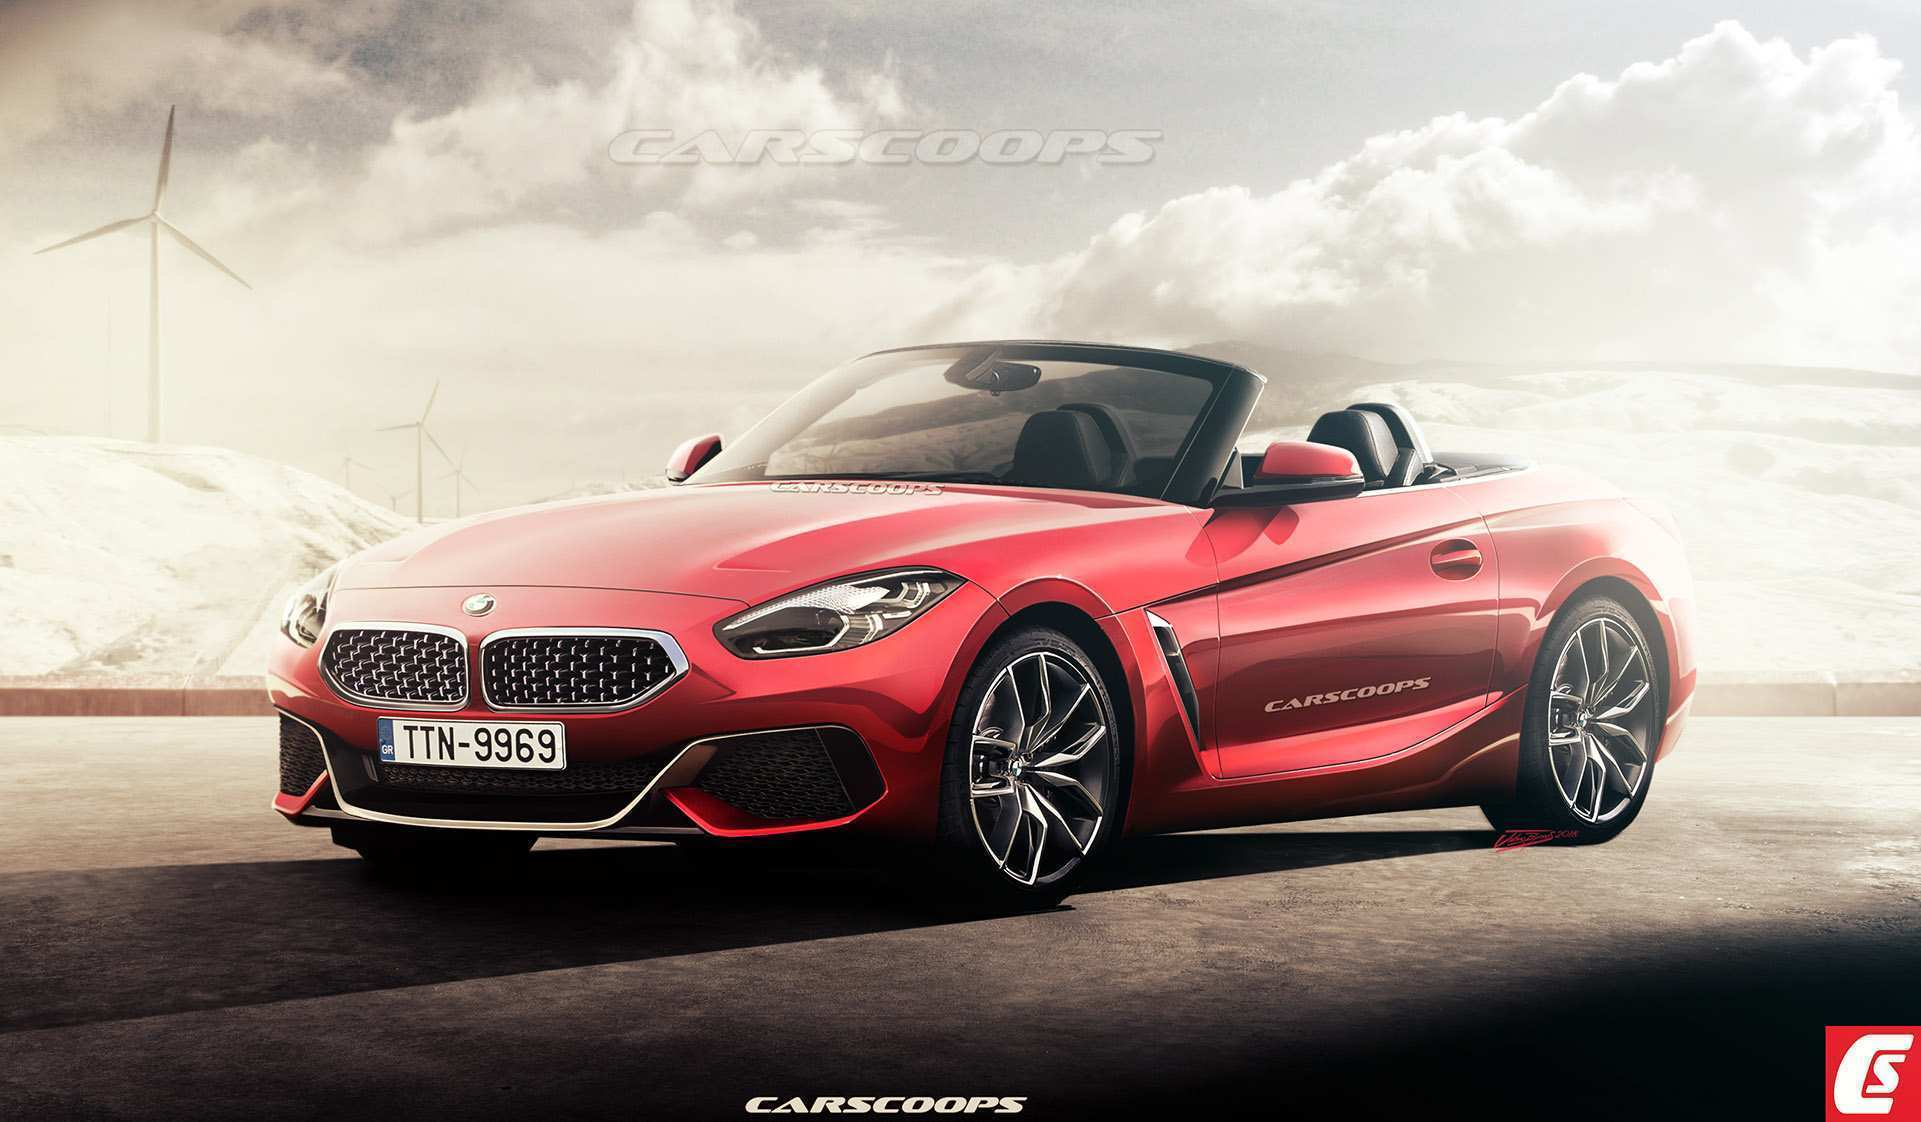 76 All New 2019 Bmw Roadster Specs with 2019 Bmw Roadster